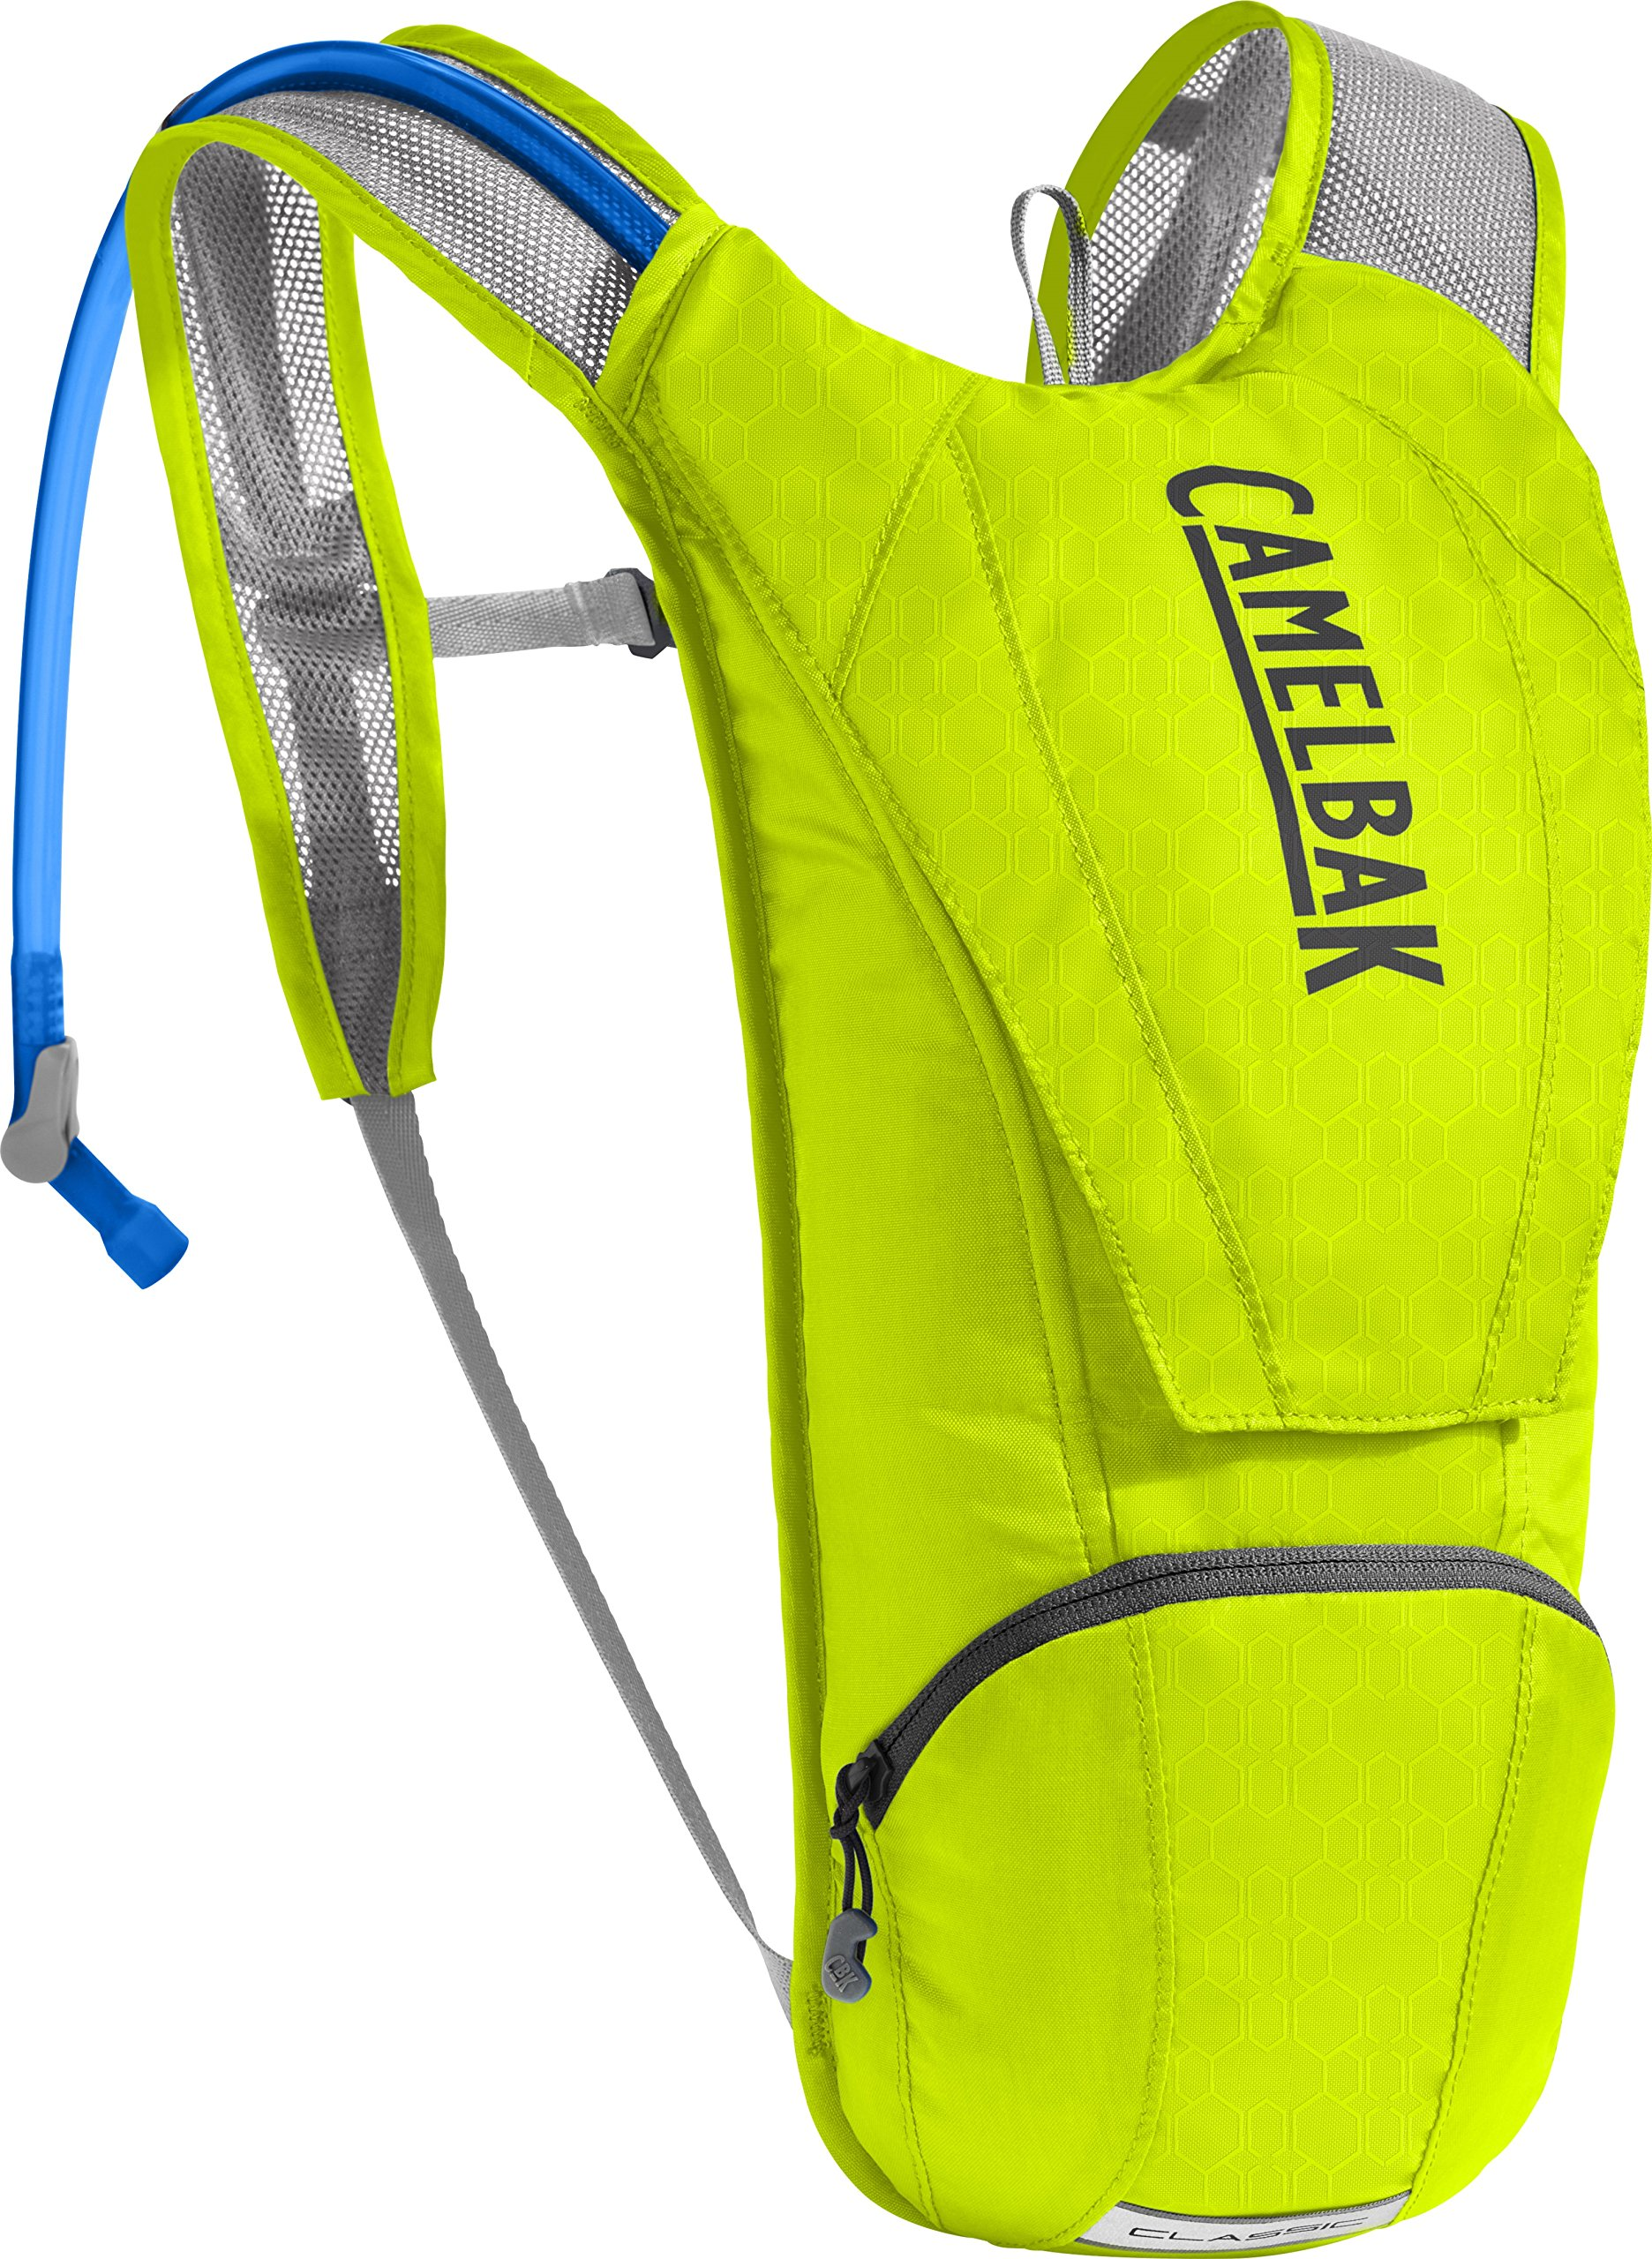 CamelBak Classic Crux Reservoir Hydration Pack, Lime Punch/Silver, 2.5 L/85 oz